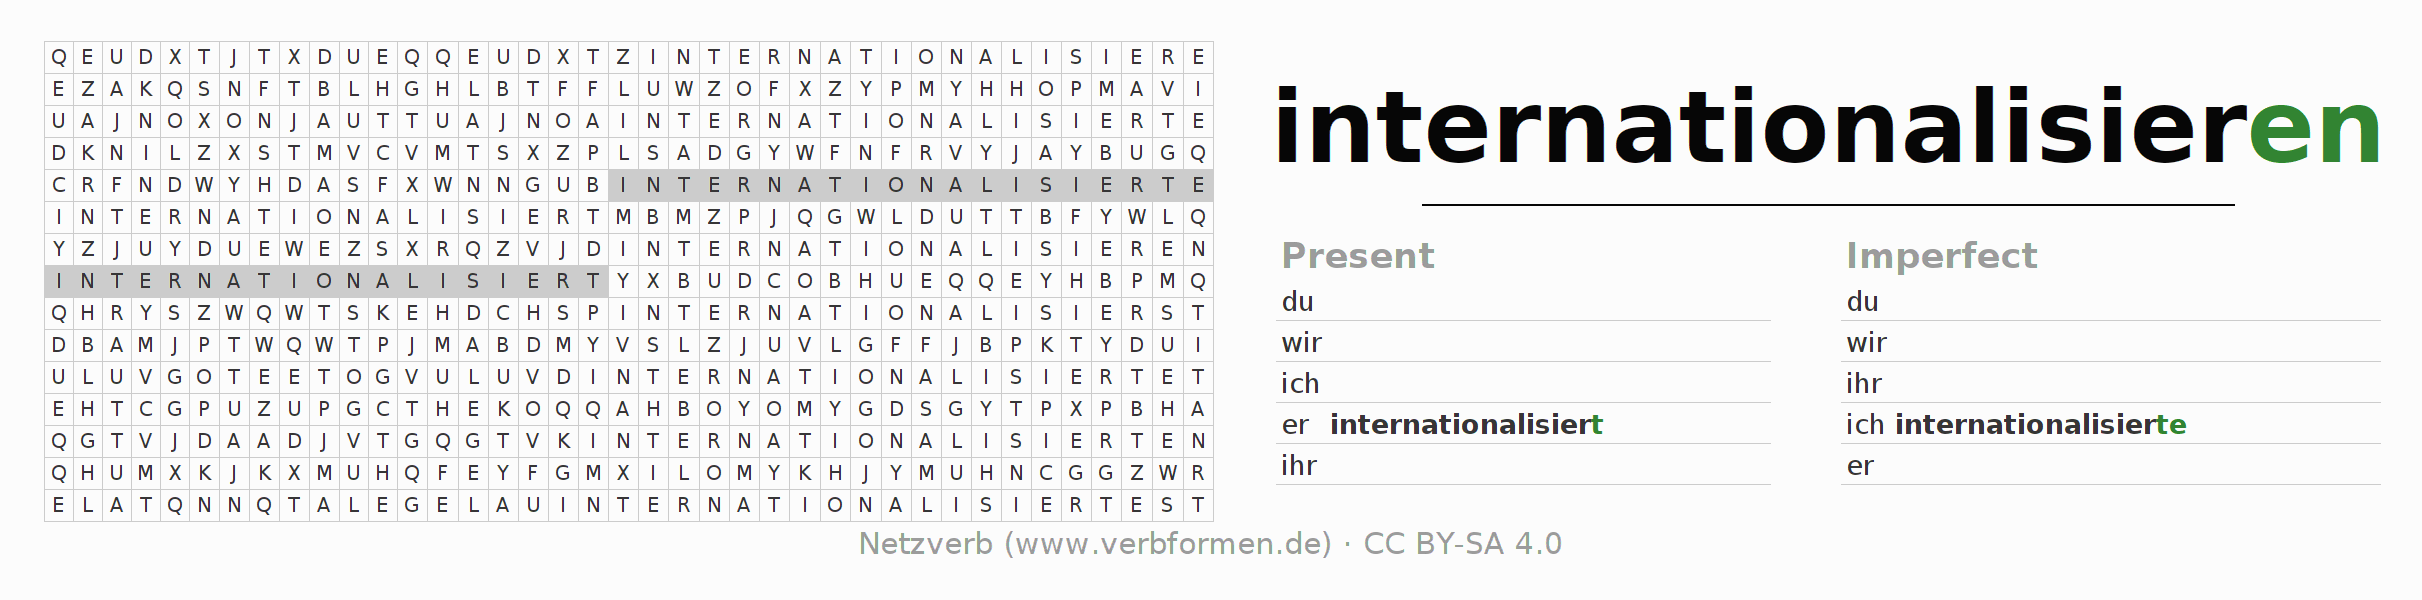 Word search puzzle for the conjugation of the verb internationalisieren